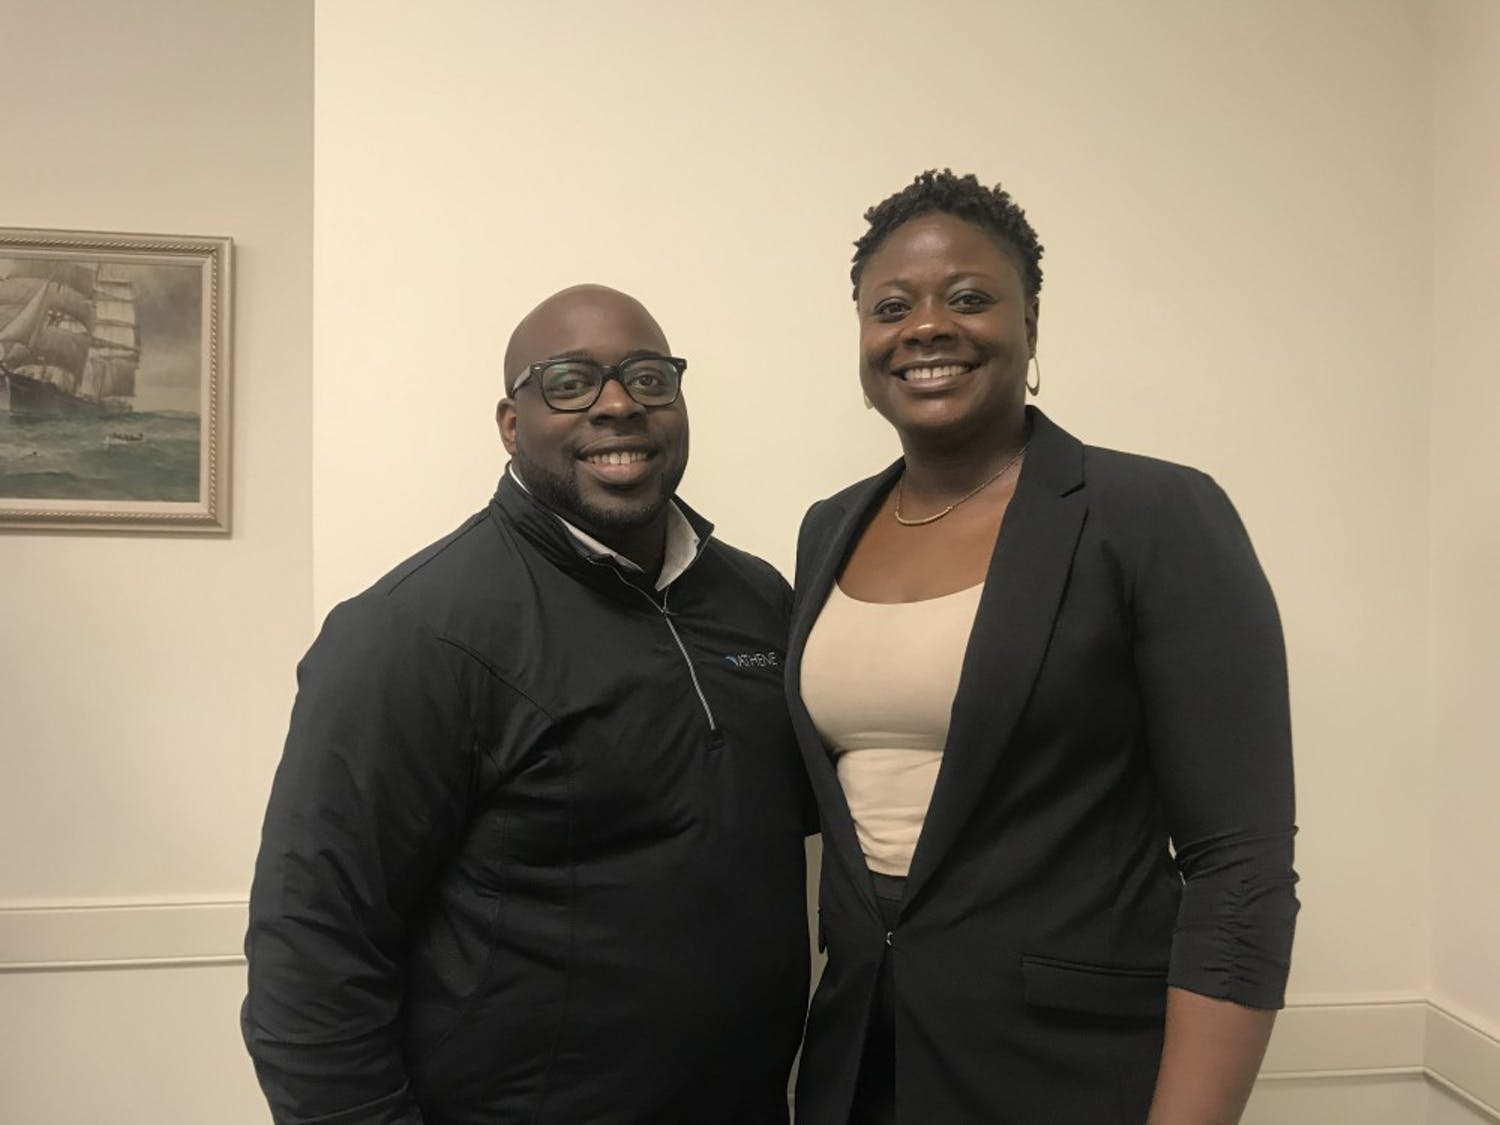 Brother and sister Robert Johnson (left) and Debra Johnson (right) pose together after the UNC School of Social Work's lecture 'Parenting Black Boys in America.'